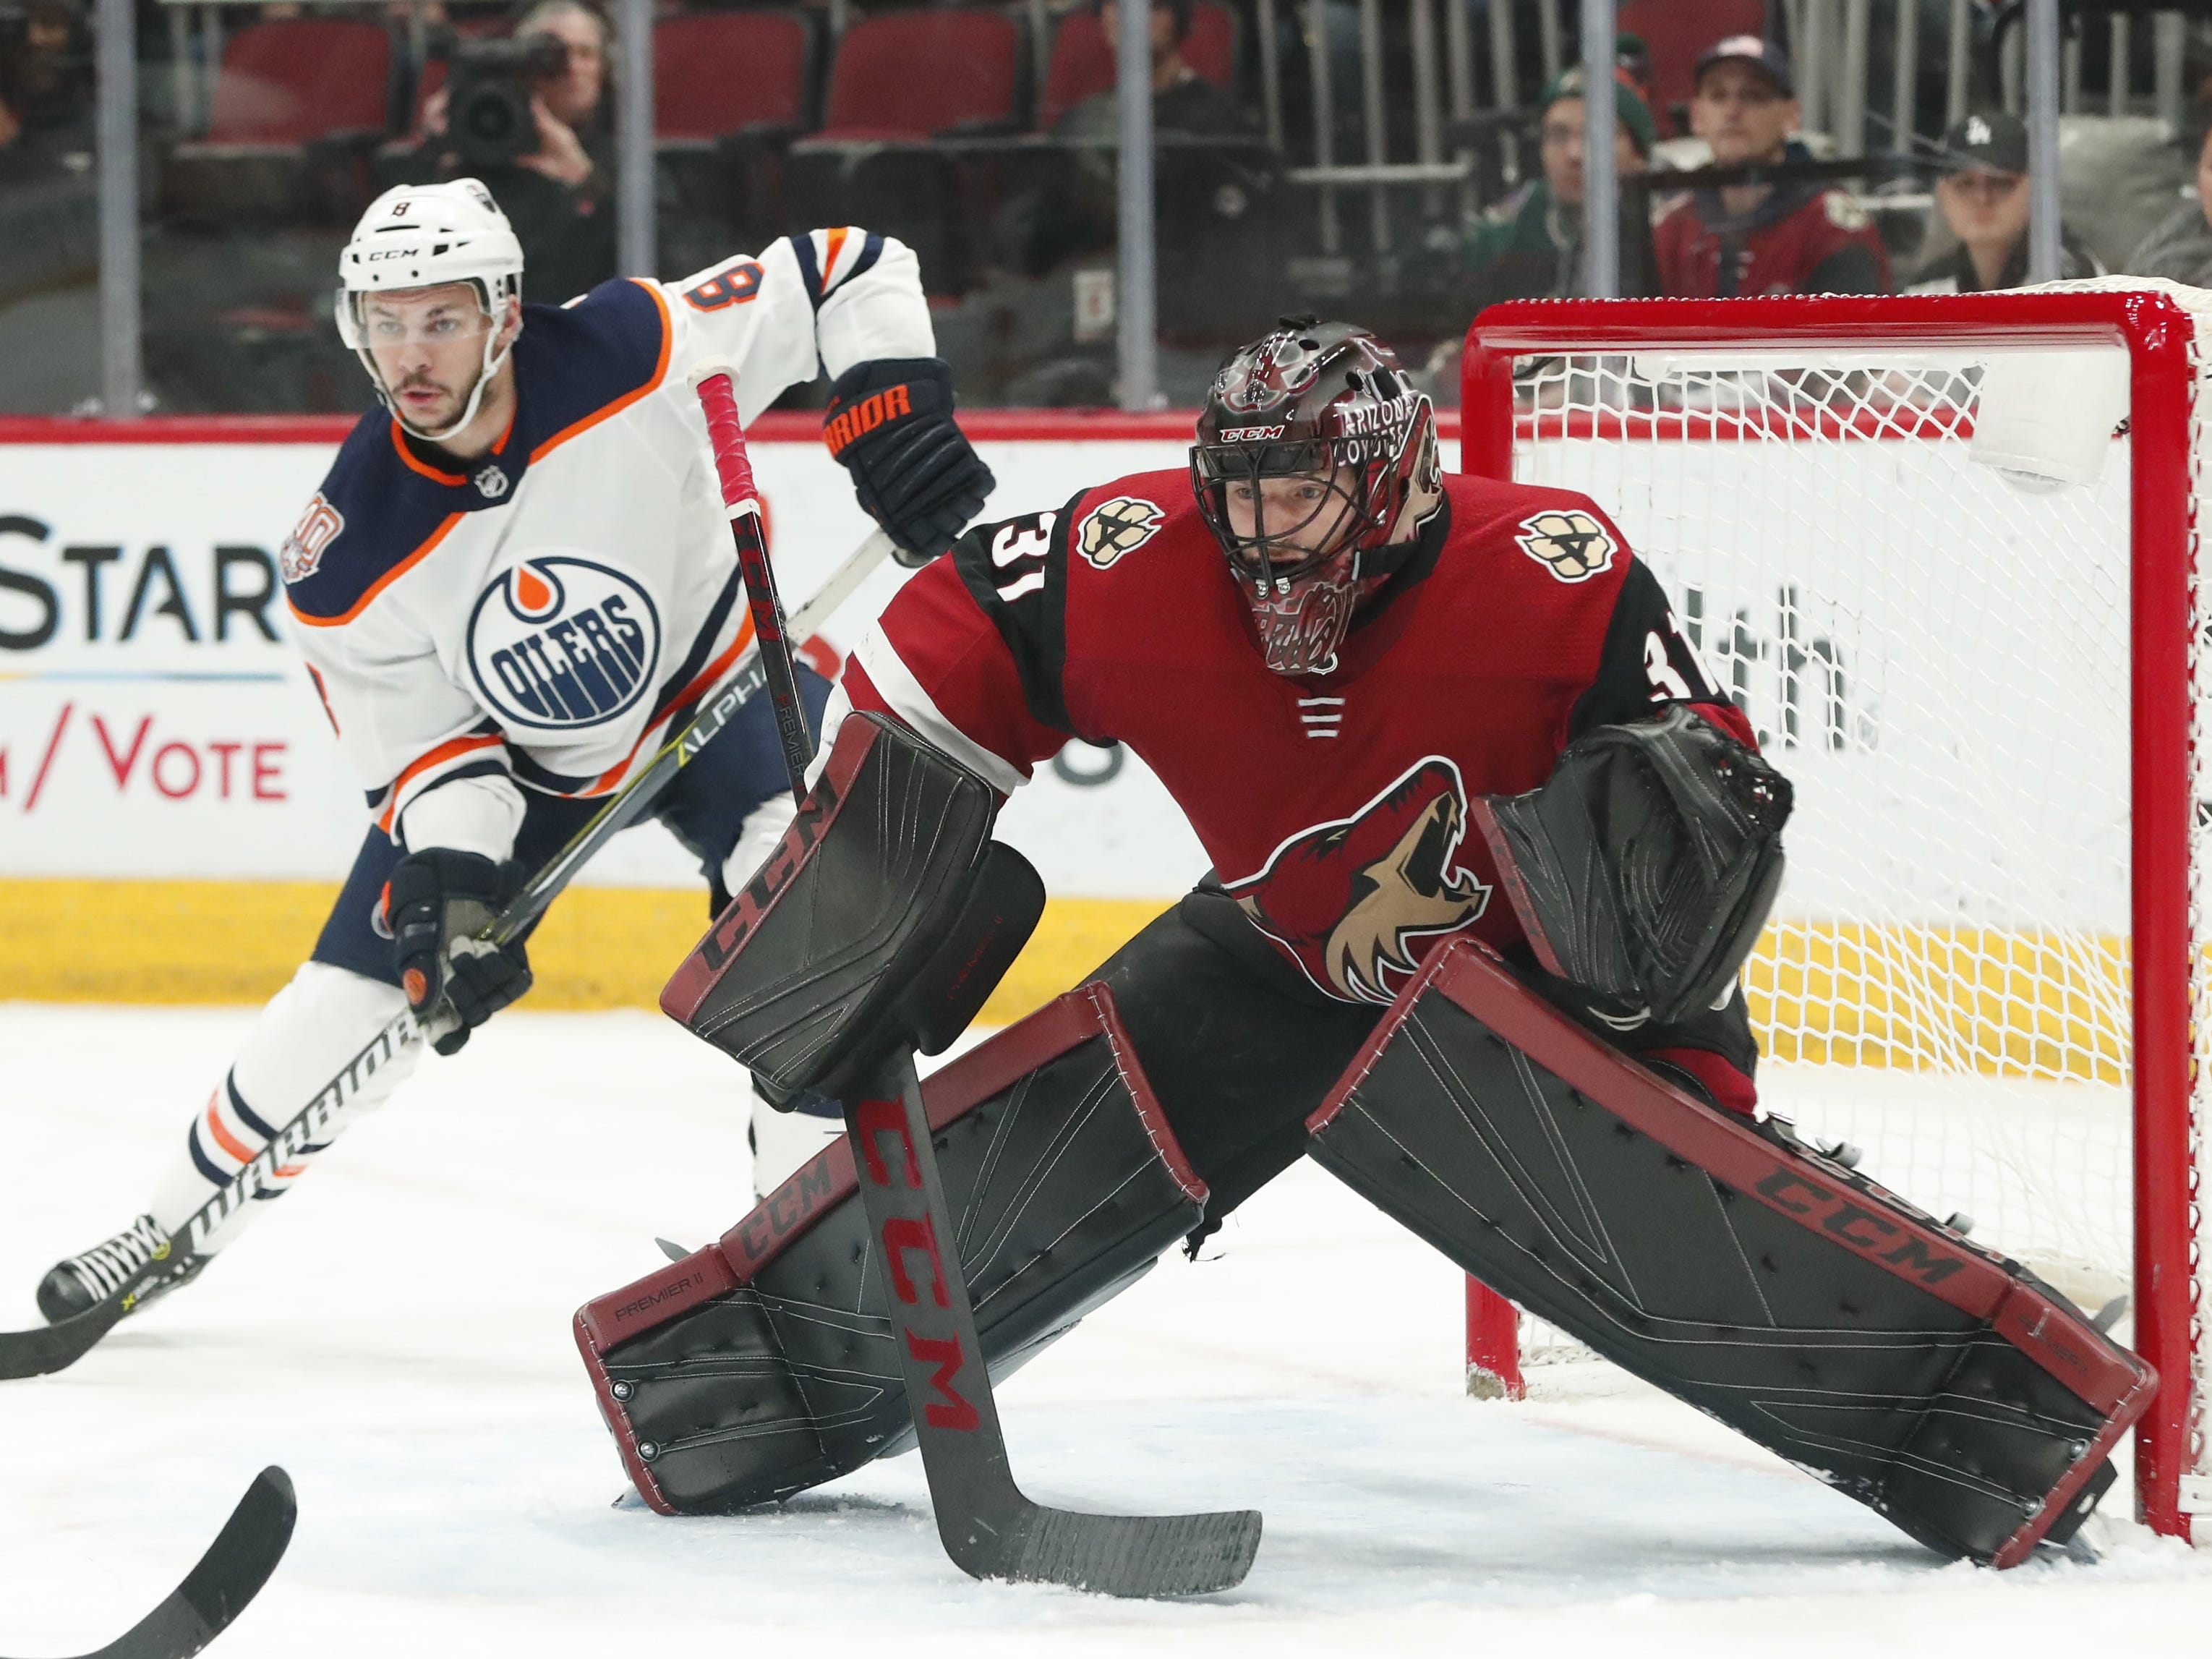 Arizona Coyotes goaltender Adin Hill (31) defends the net against Edmonton Oilers right wing Ty Rattie (8) during the first period in Glendale January 2, 2019.